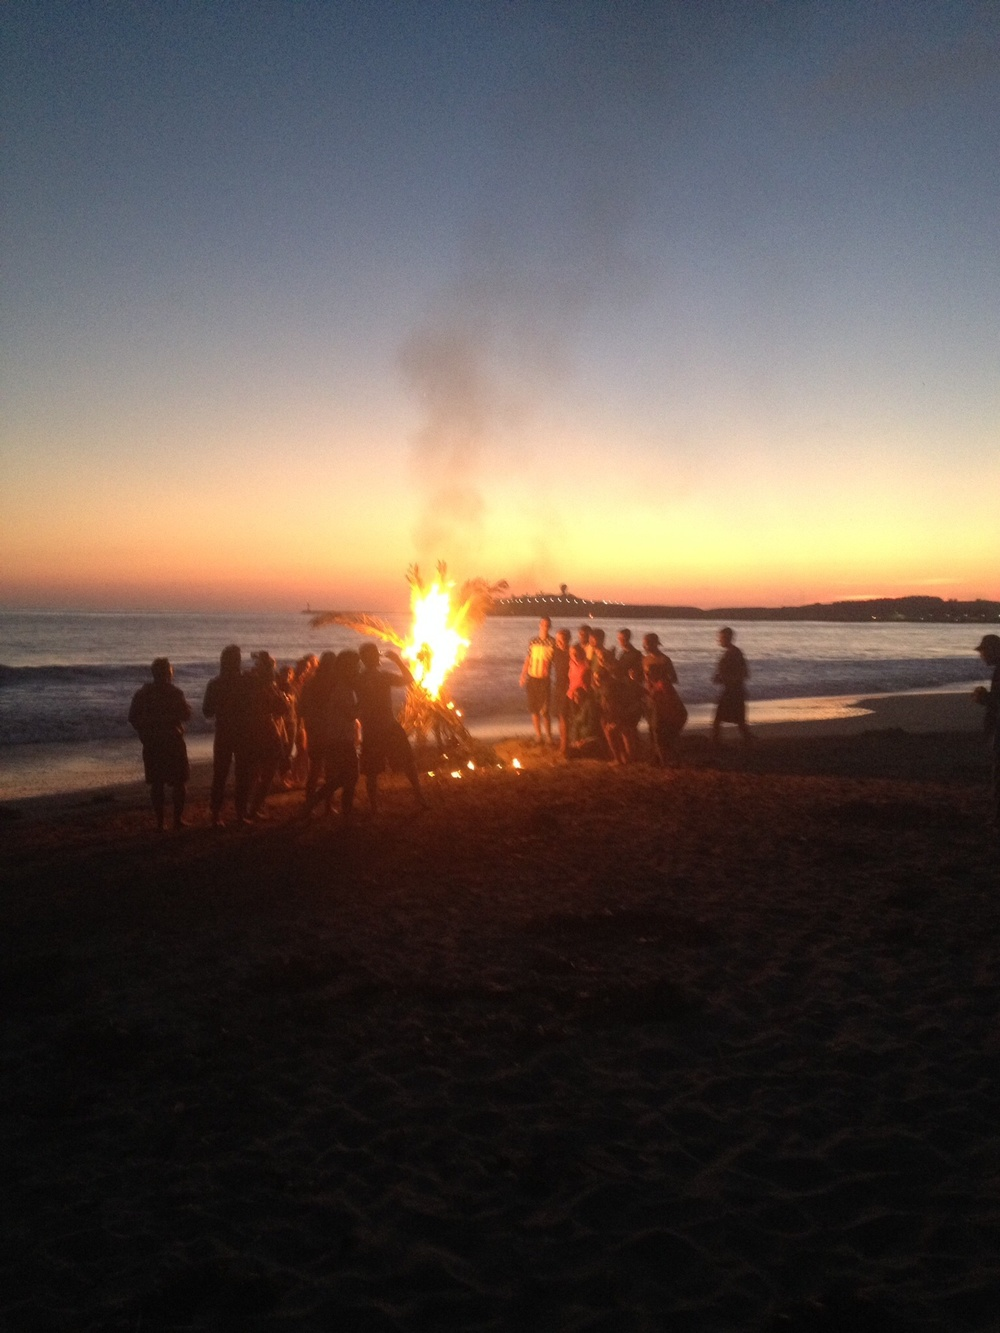 Our evening BBQ on Miramar Beach, Half Moon Bay. We almost got fined for having a bonfire on the beach, whoops!